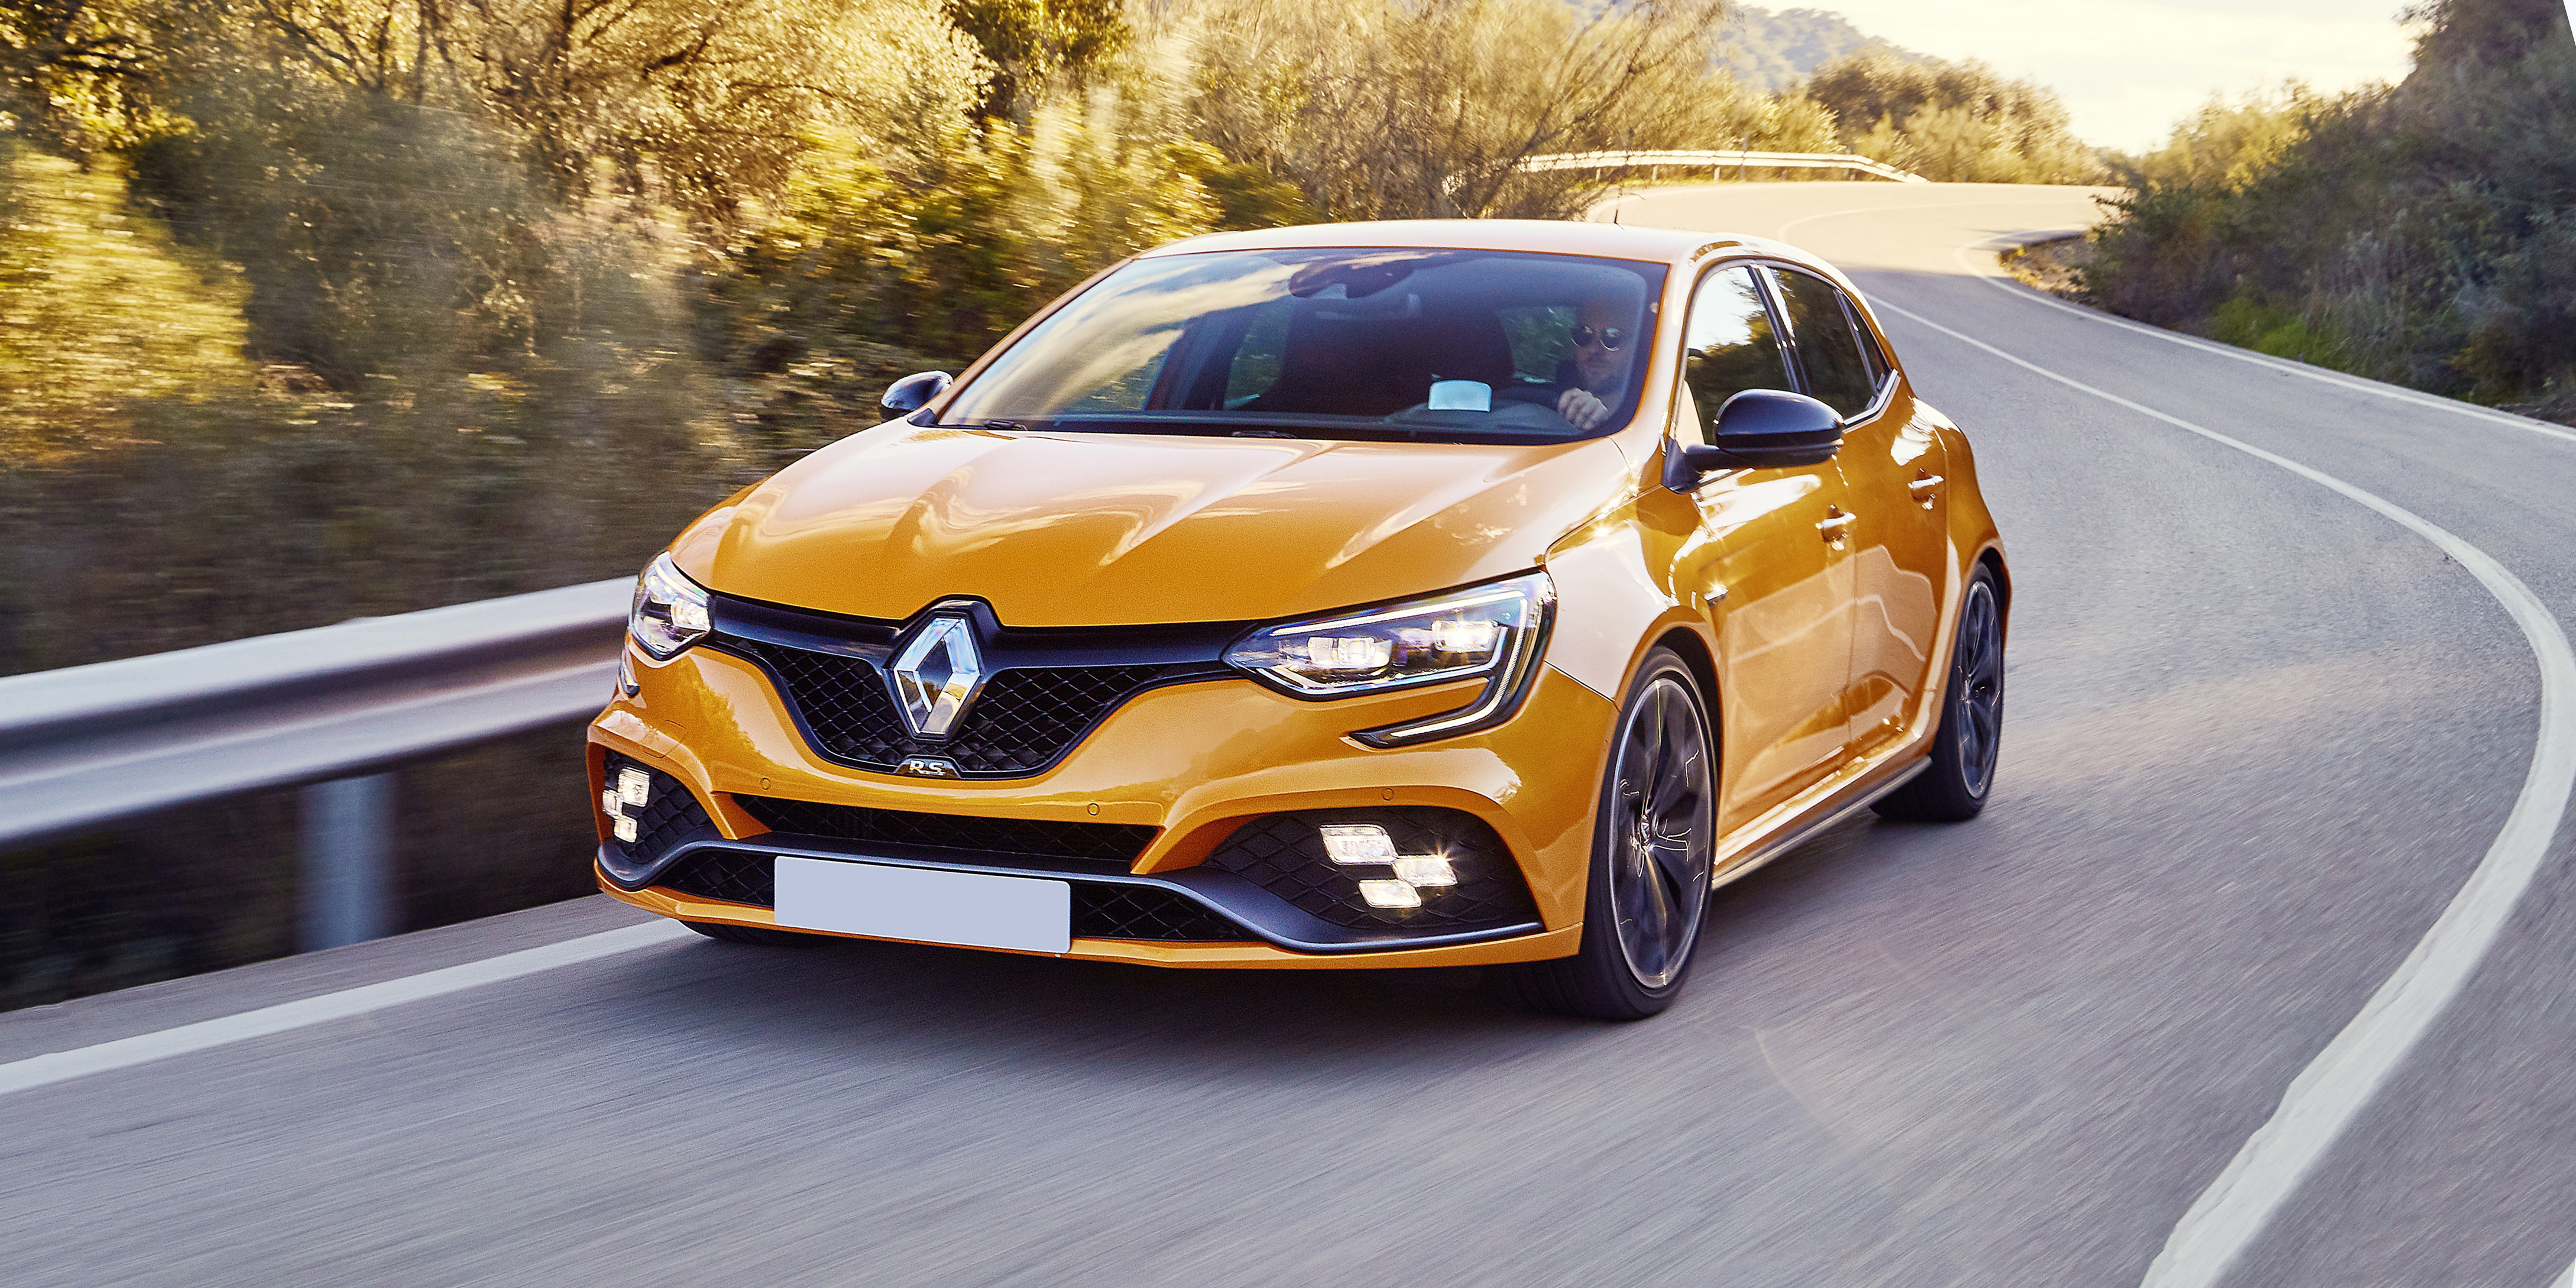 New Renault Megane RS price, specs and release date | carwow